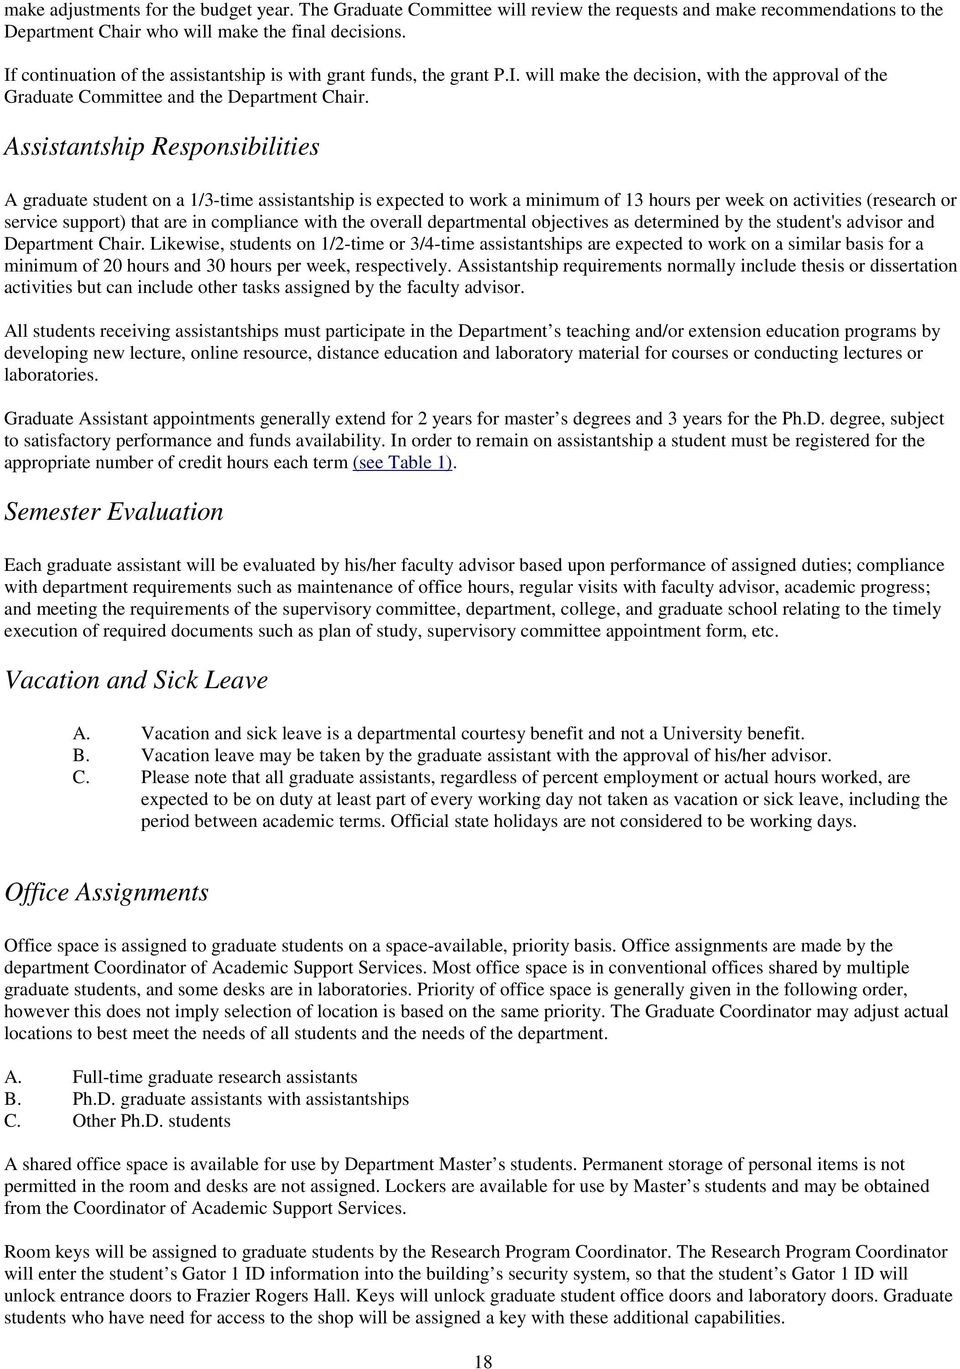 Assistantship Responsibilities A graduate student on a 1/3-time assistantship is expected to work a minimum of 13 hours per week on activities (research or service support) that are in compliance